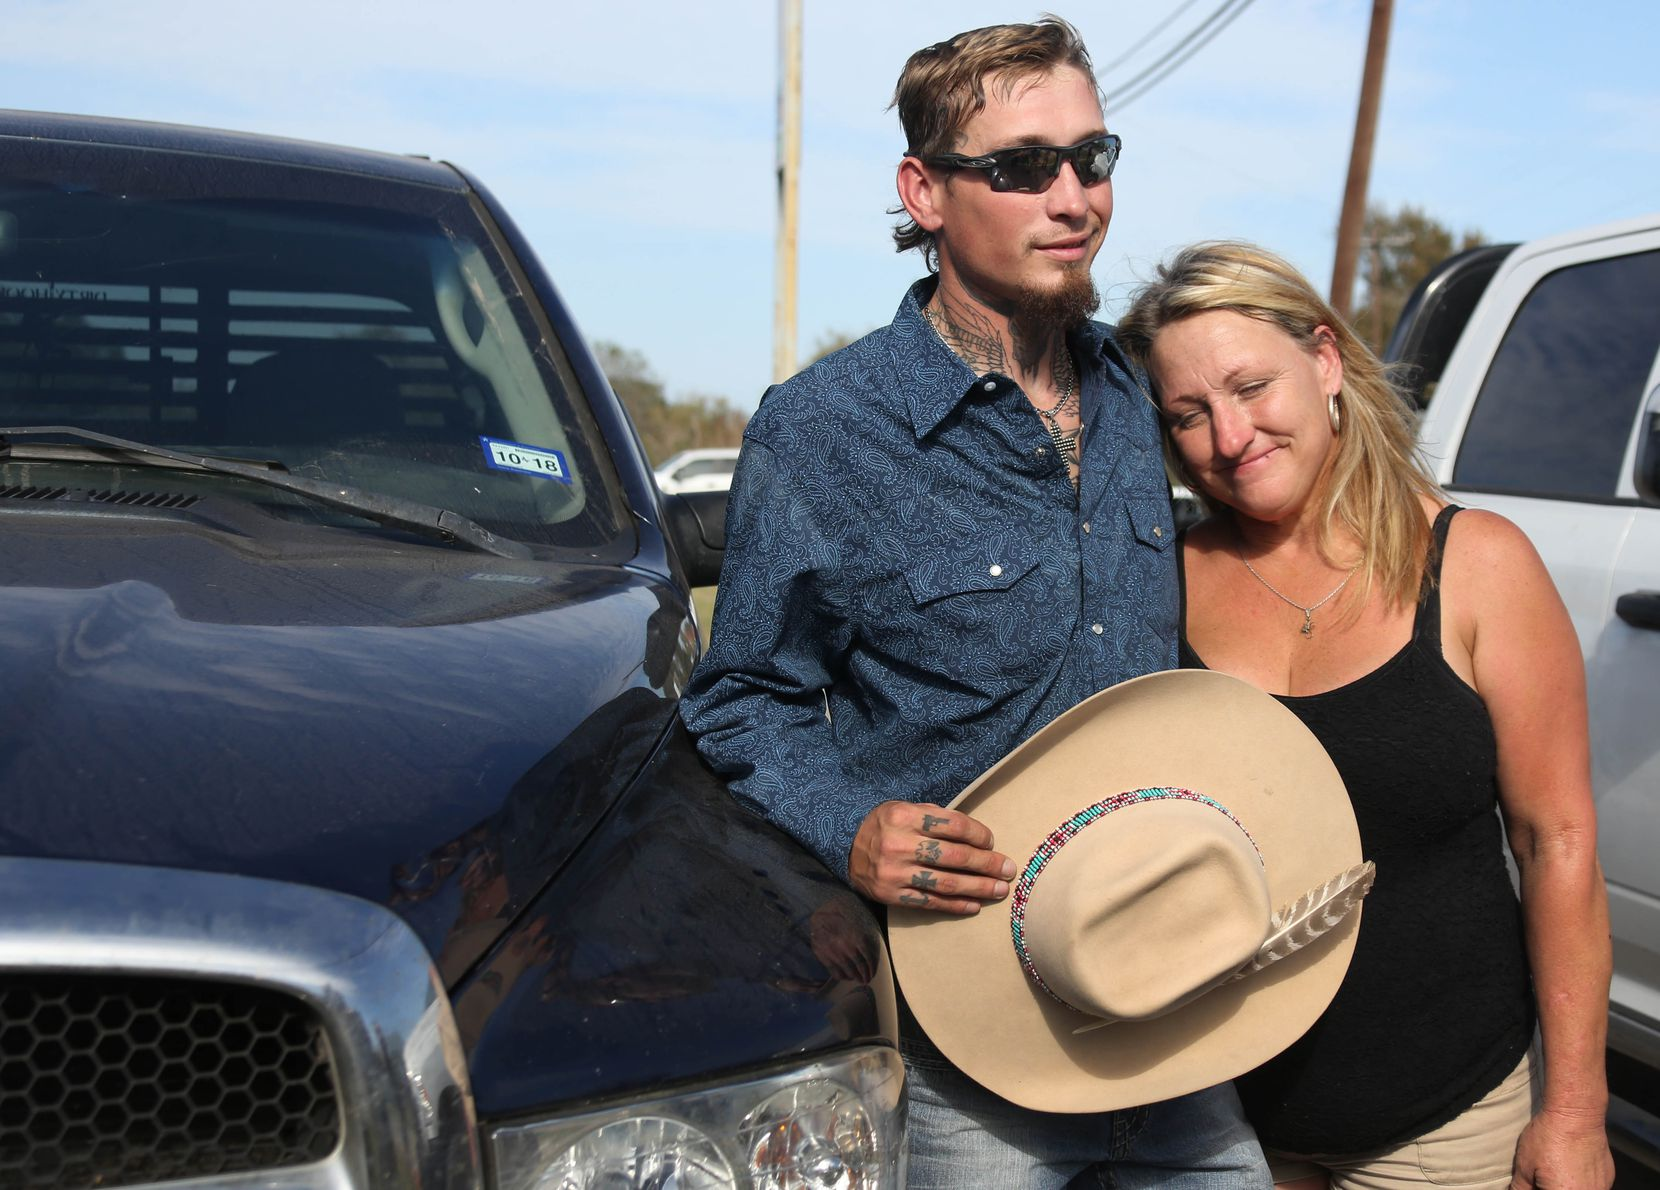 Johnnie Langendorff poses for a photo with his mother Heather Langendorff by the truck he used during a high speed pursuit of the Sutherland Springs Baptist Church gunman after the killing rampage at the church in Sutherlnd Springs, Texas.